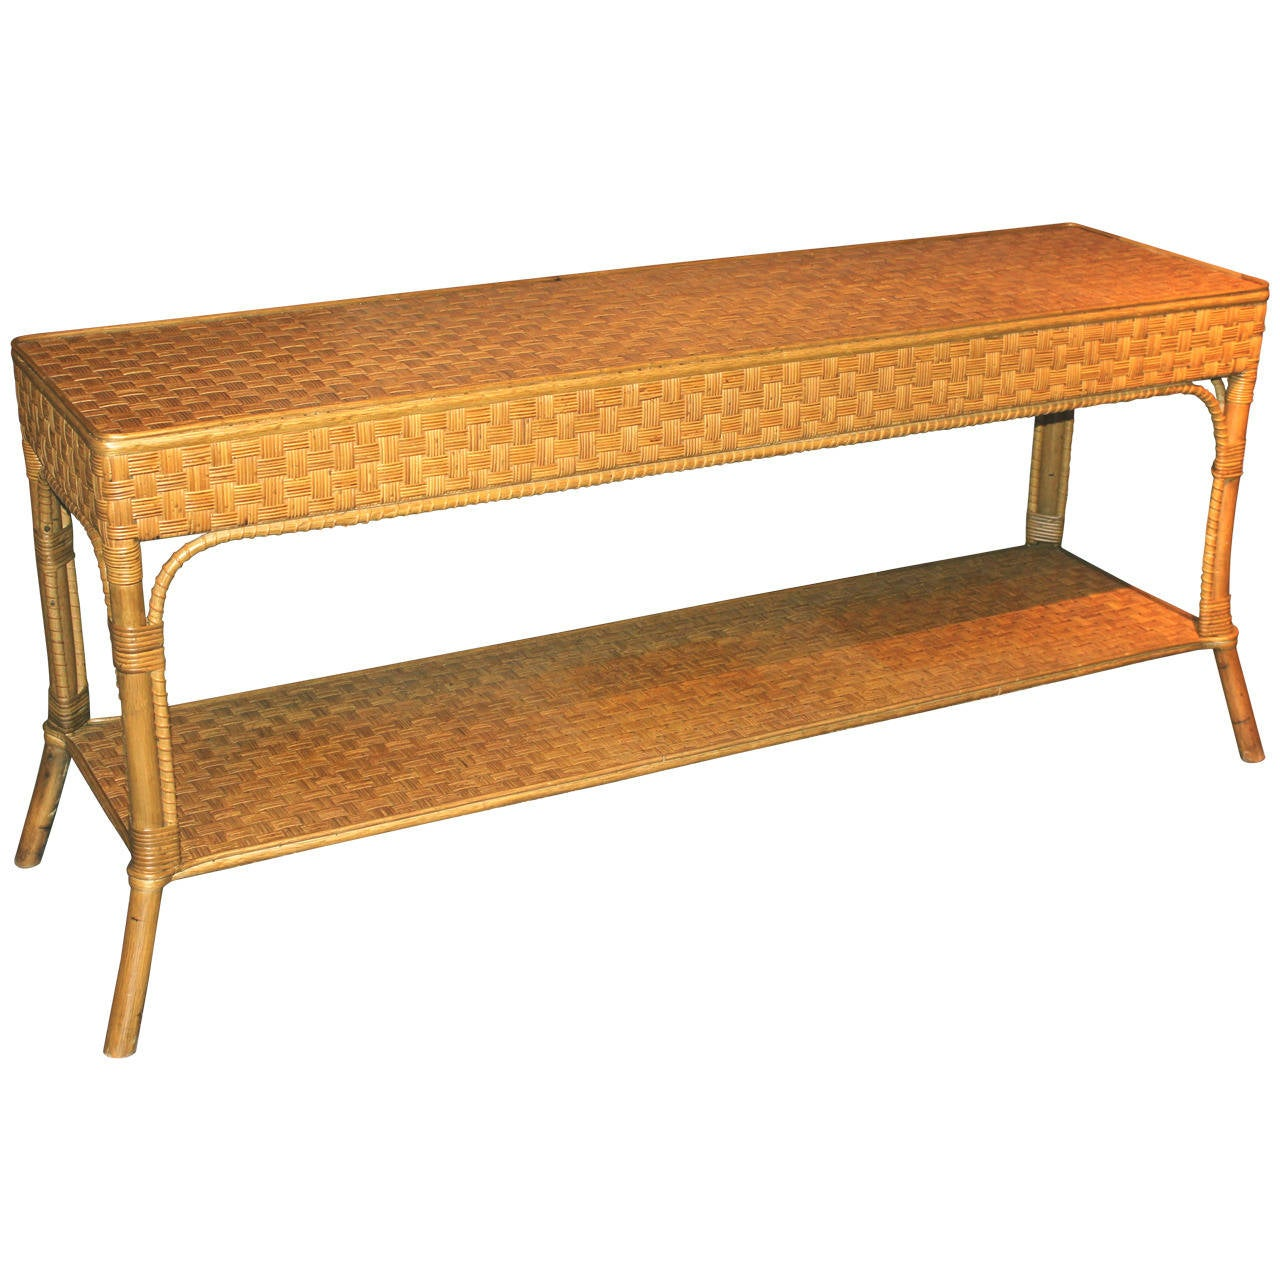 Wicker Console Or Sofa Table At 1stdibs. Best Adjustable Height Desk. Fincen Help Desk. Vintage Side Table. Stationary Bike With Desk. Lamps Plus Desk Lamps. Chic Office Desk. Yellow Chest Of Drawers. Inexpensive Pool Tables